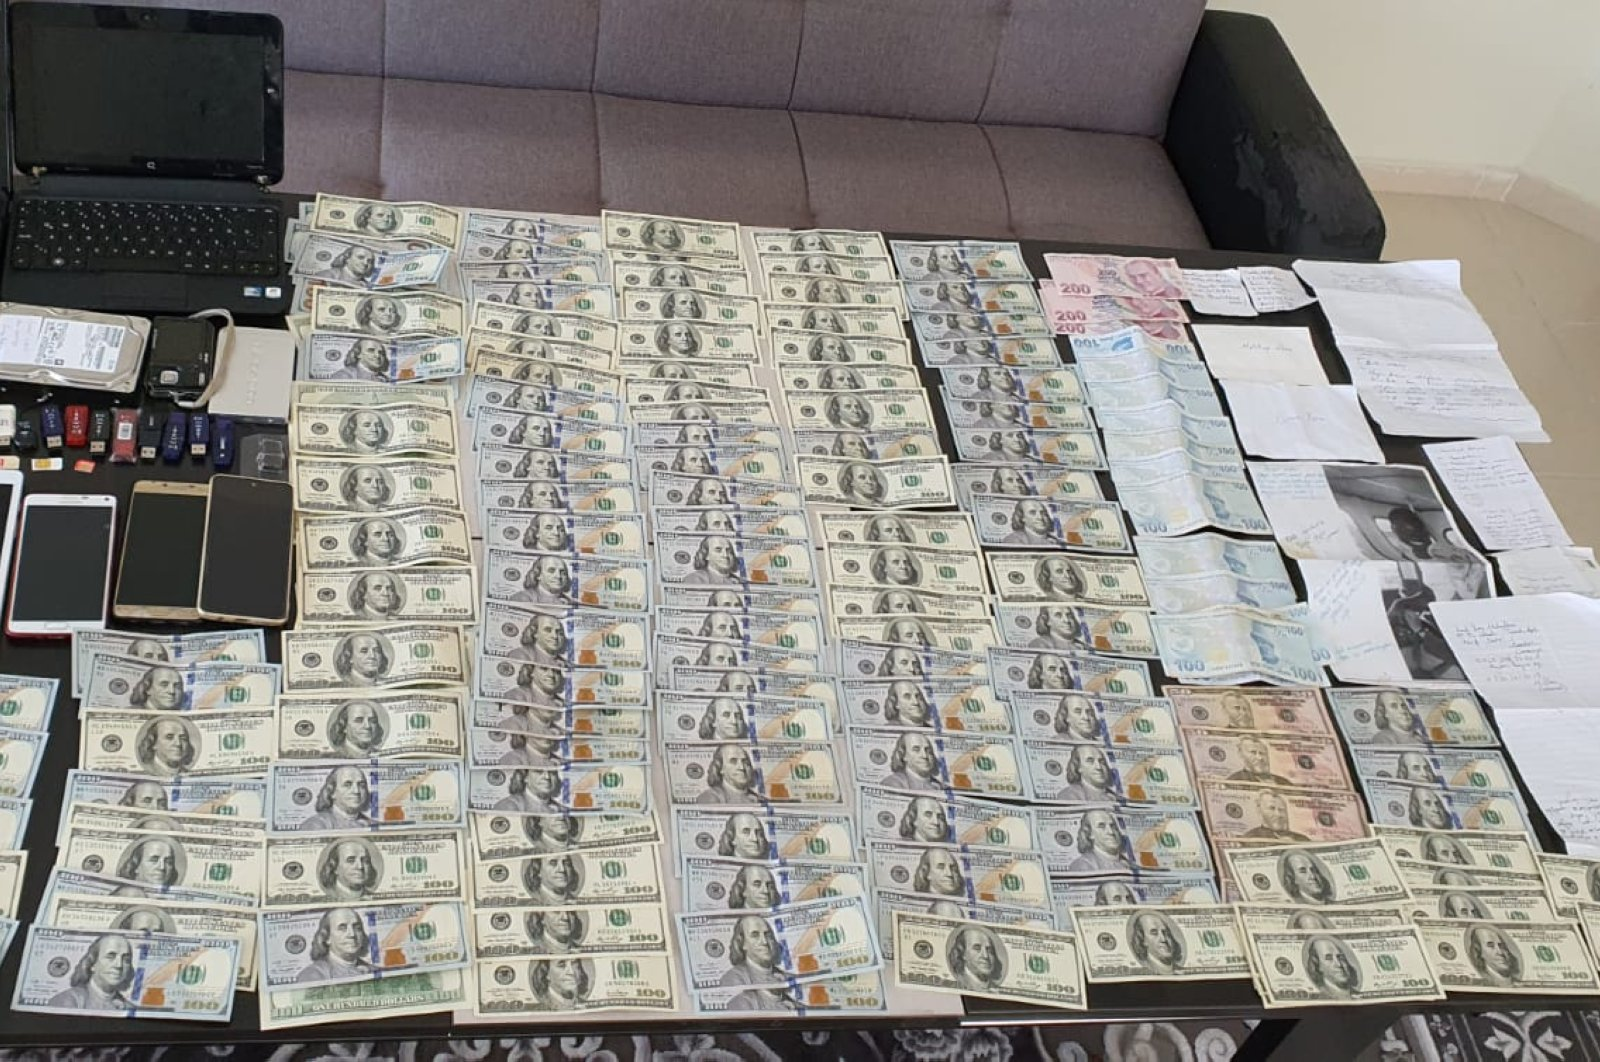 Security forces display evidence seized, including large amounts of cash in foreign currency, belonging to one of the FETÖ suspects in Mersin, Turkey, June 6, 2020. (AA Photo)